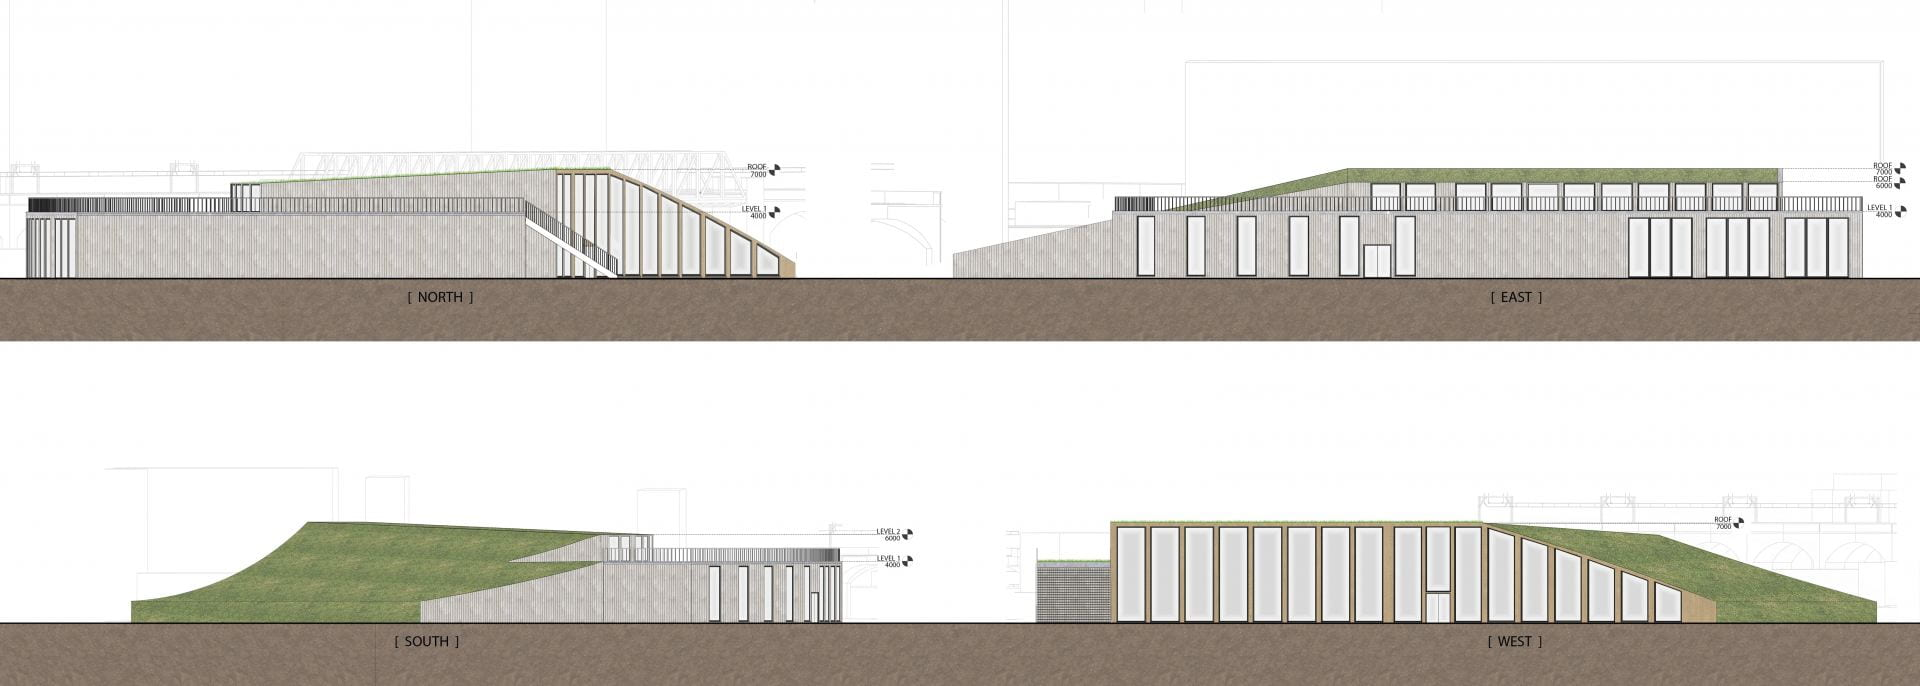 A diagram depicting Exterior Elevations Of Proposed Transition Hub Exploring The Use Of Raw Materials.